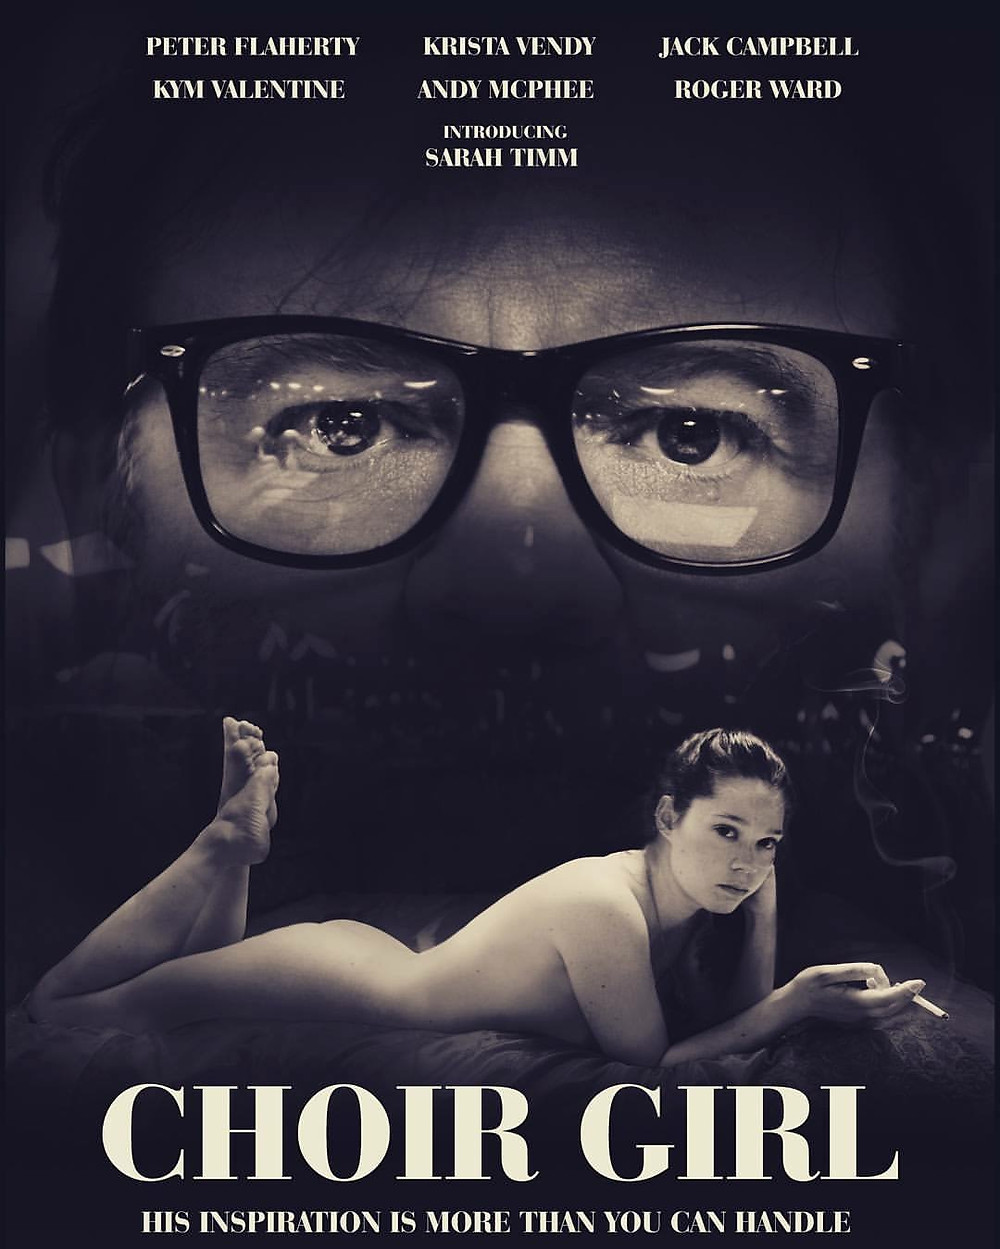 Poster for Choir Girl showing protagonists.